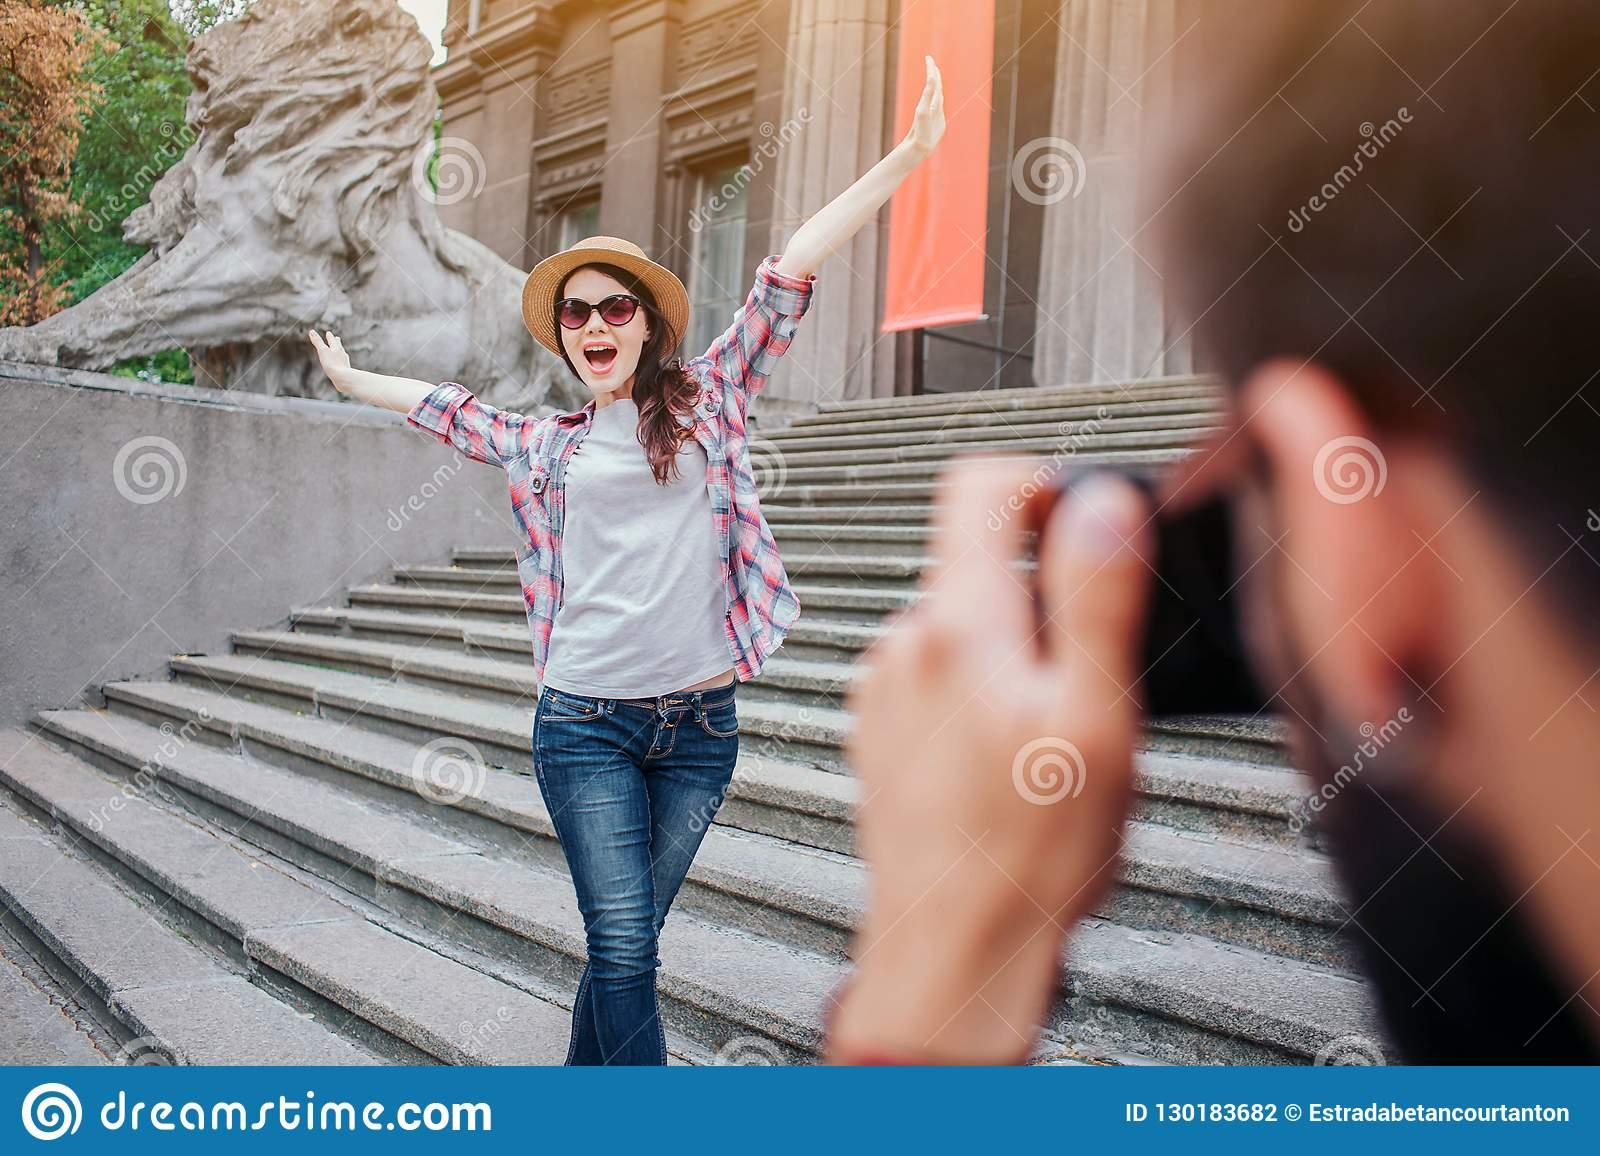 Young bearded man talking picture of happy woman. She poses on camera. Female tourist keep hands up and wears glasses